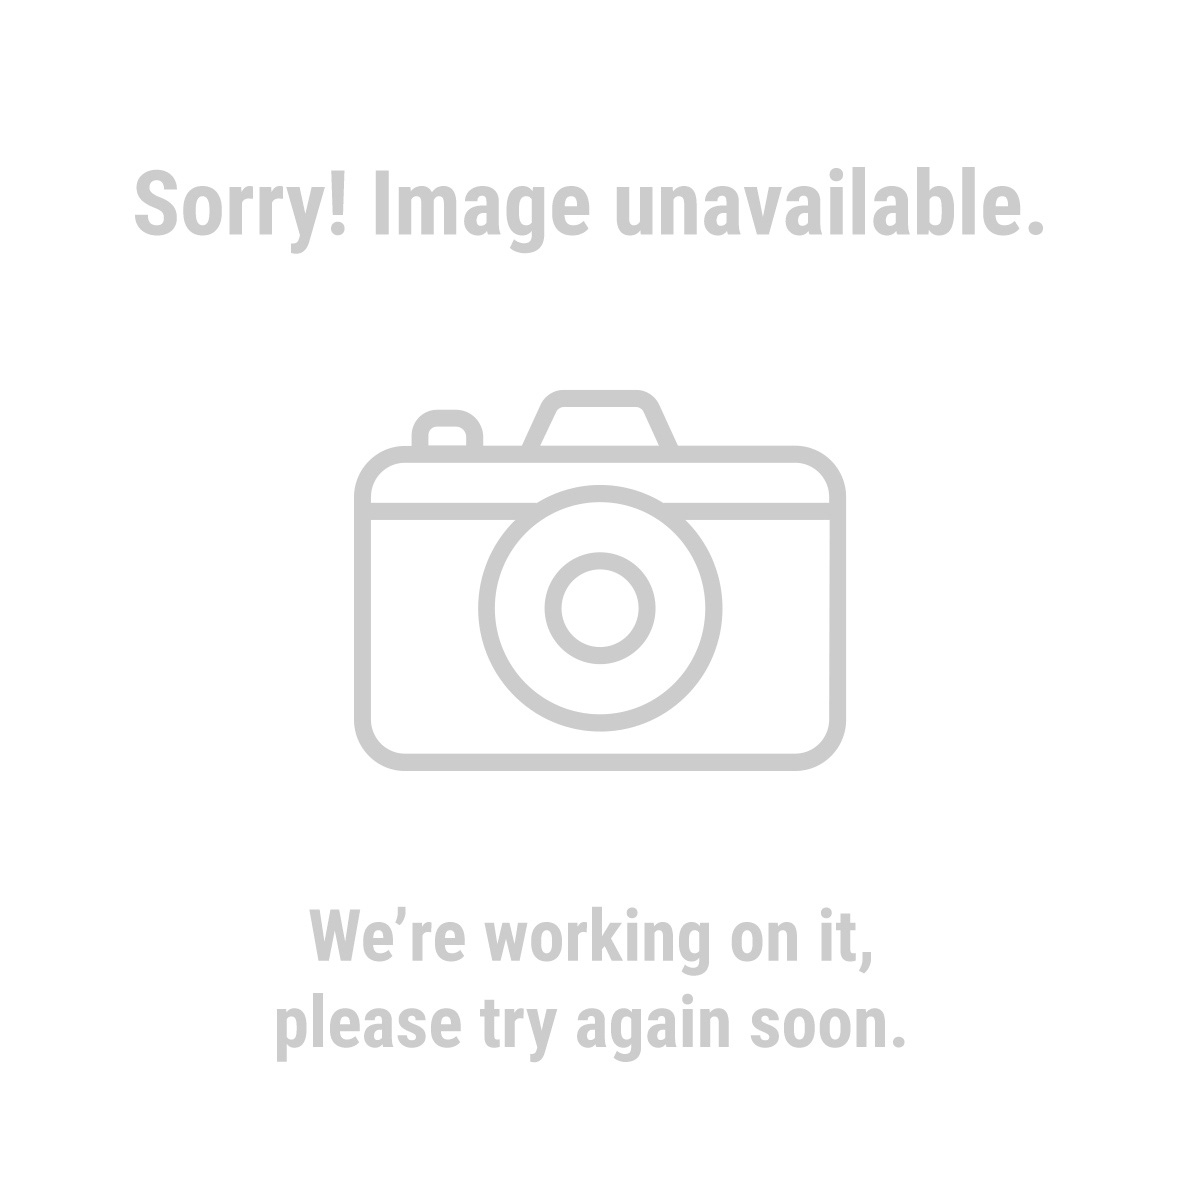 Bondo 99863 1 Gallon Body Filler